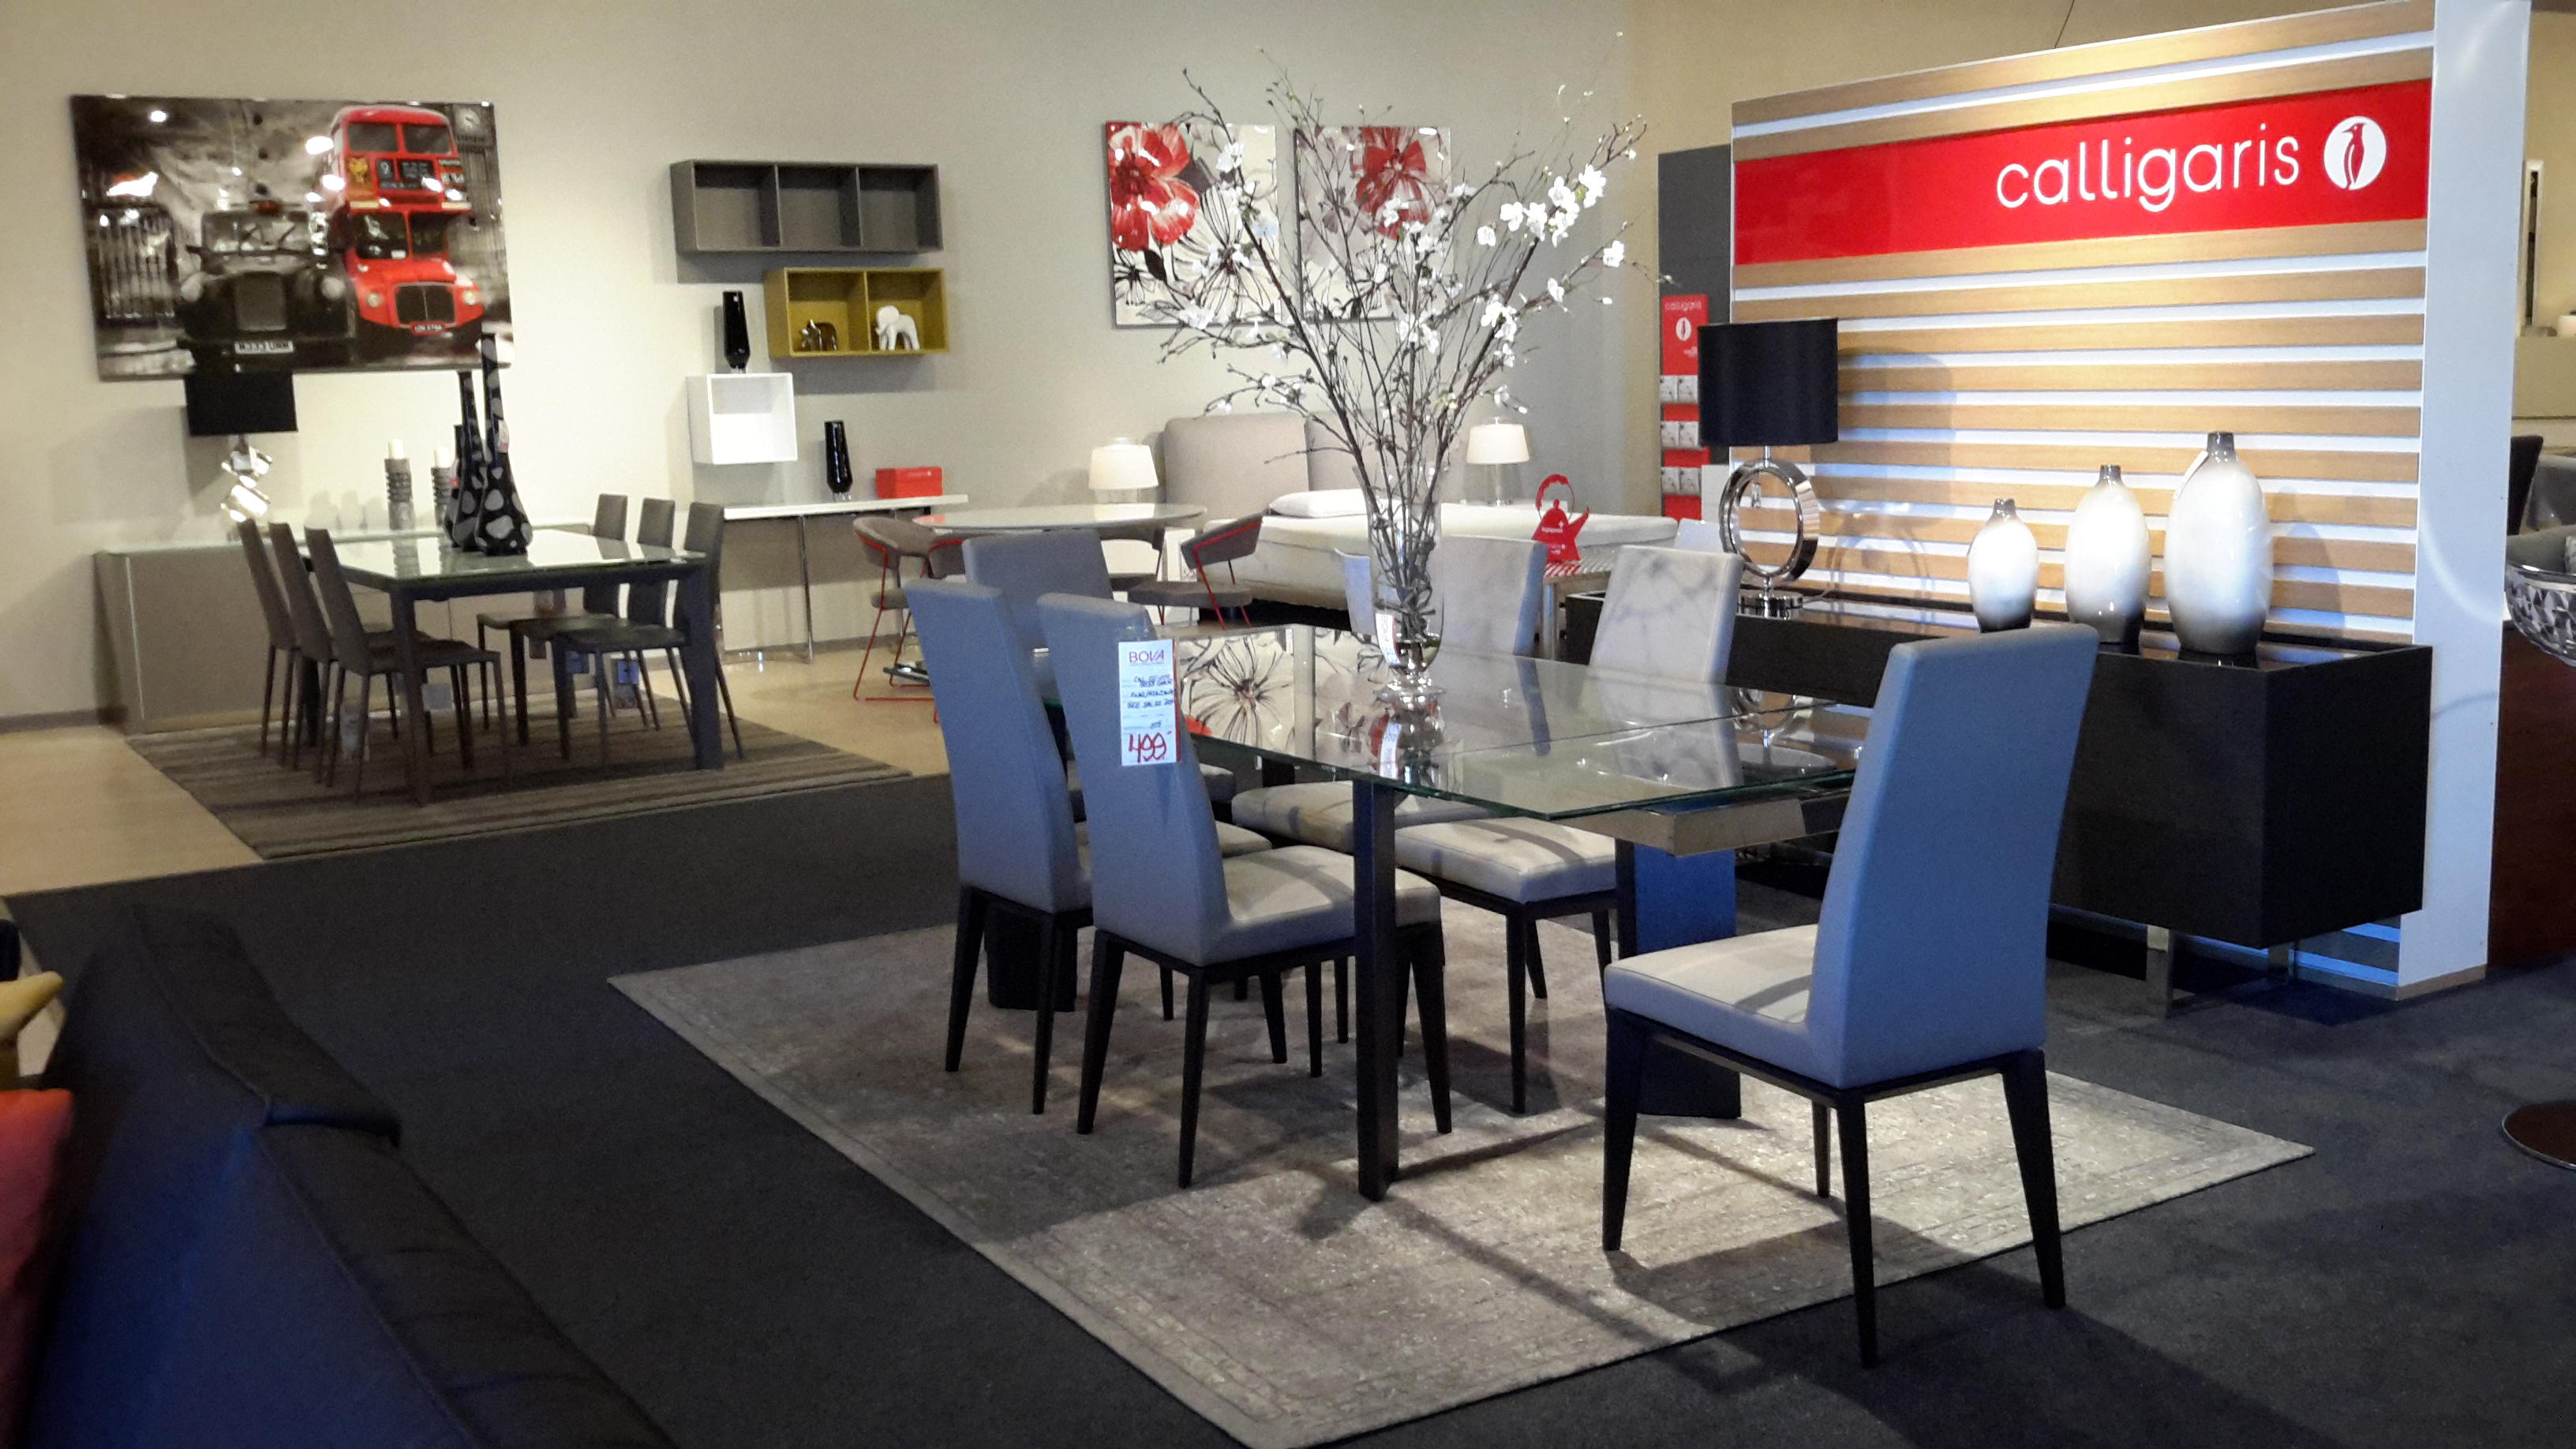 Bova Contemporary Furniture 6460 Dawson Blvd I 85 Access Road (I 85 And Jimmy  Carter Blvd.) Norcross, GA Furniture Dealers Showrooms   MapQuest